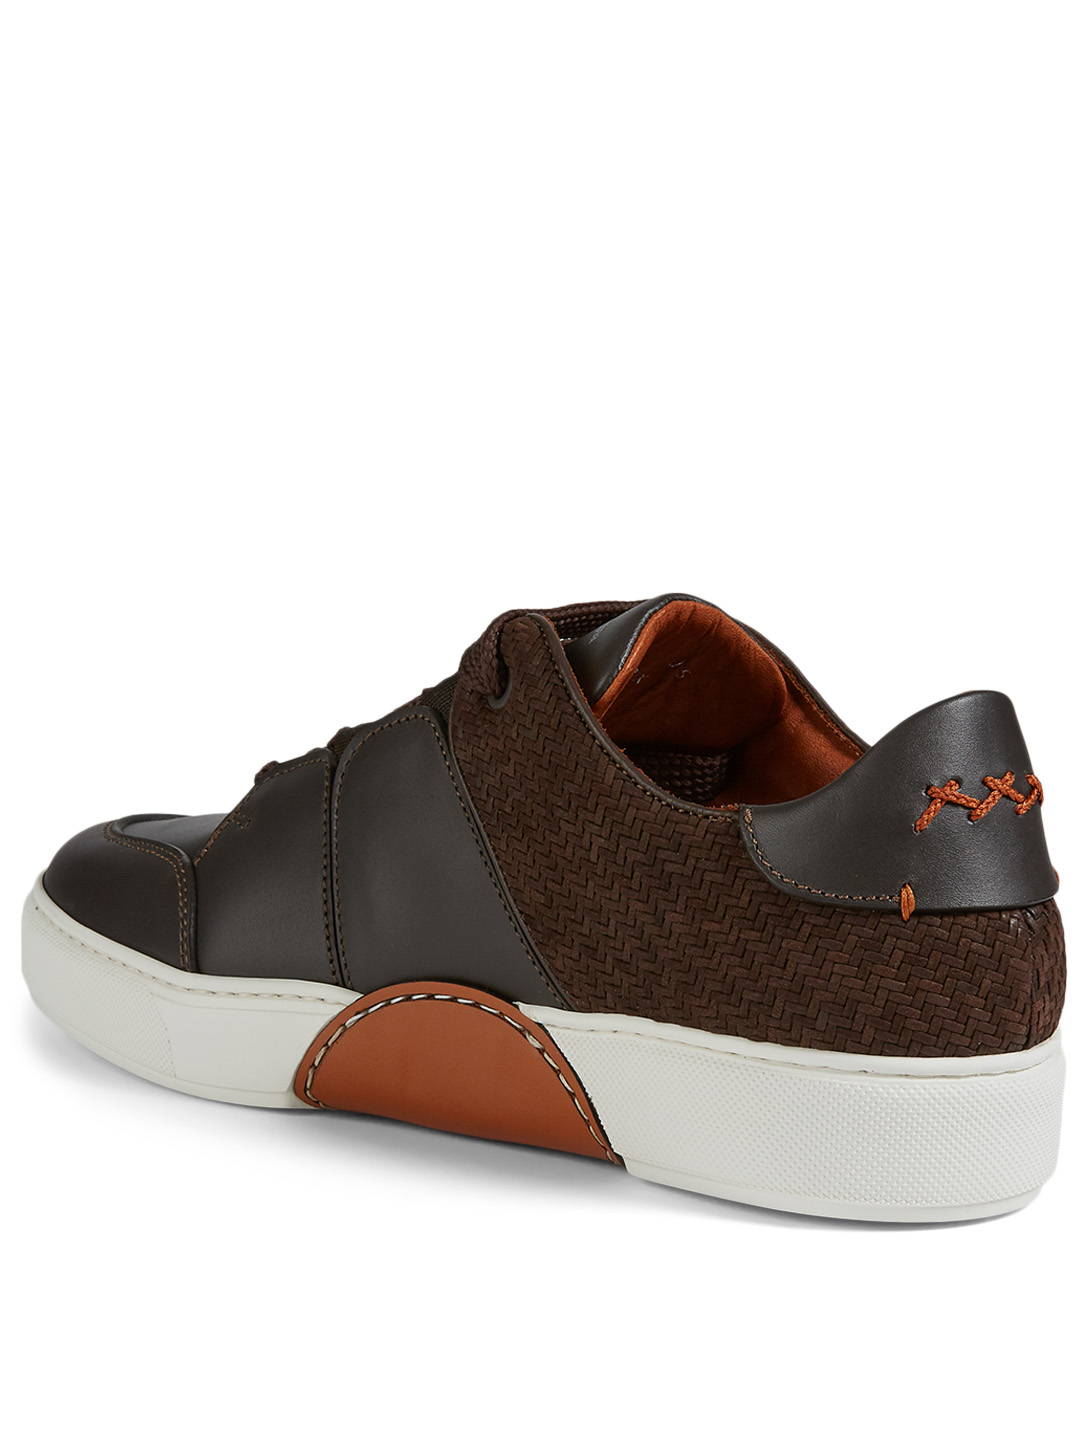 ERMENEGILDO ZEGNA Tiziano Pelletessuta™ Leather Sneakers Men's Brown